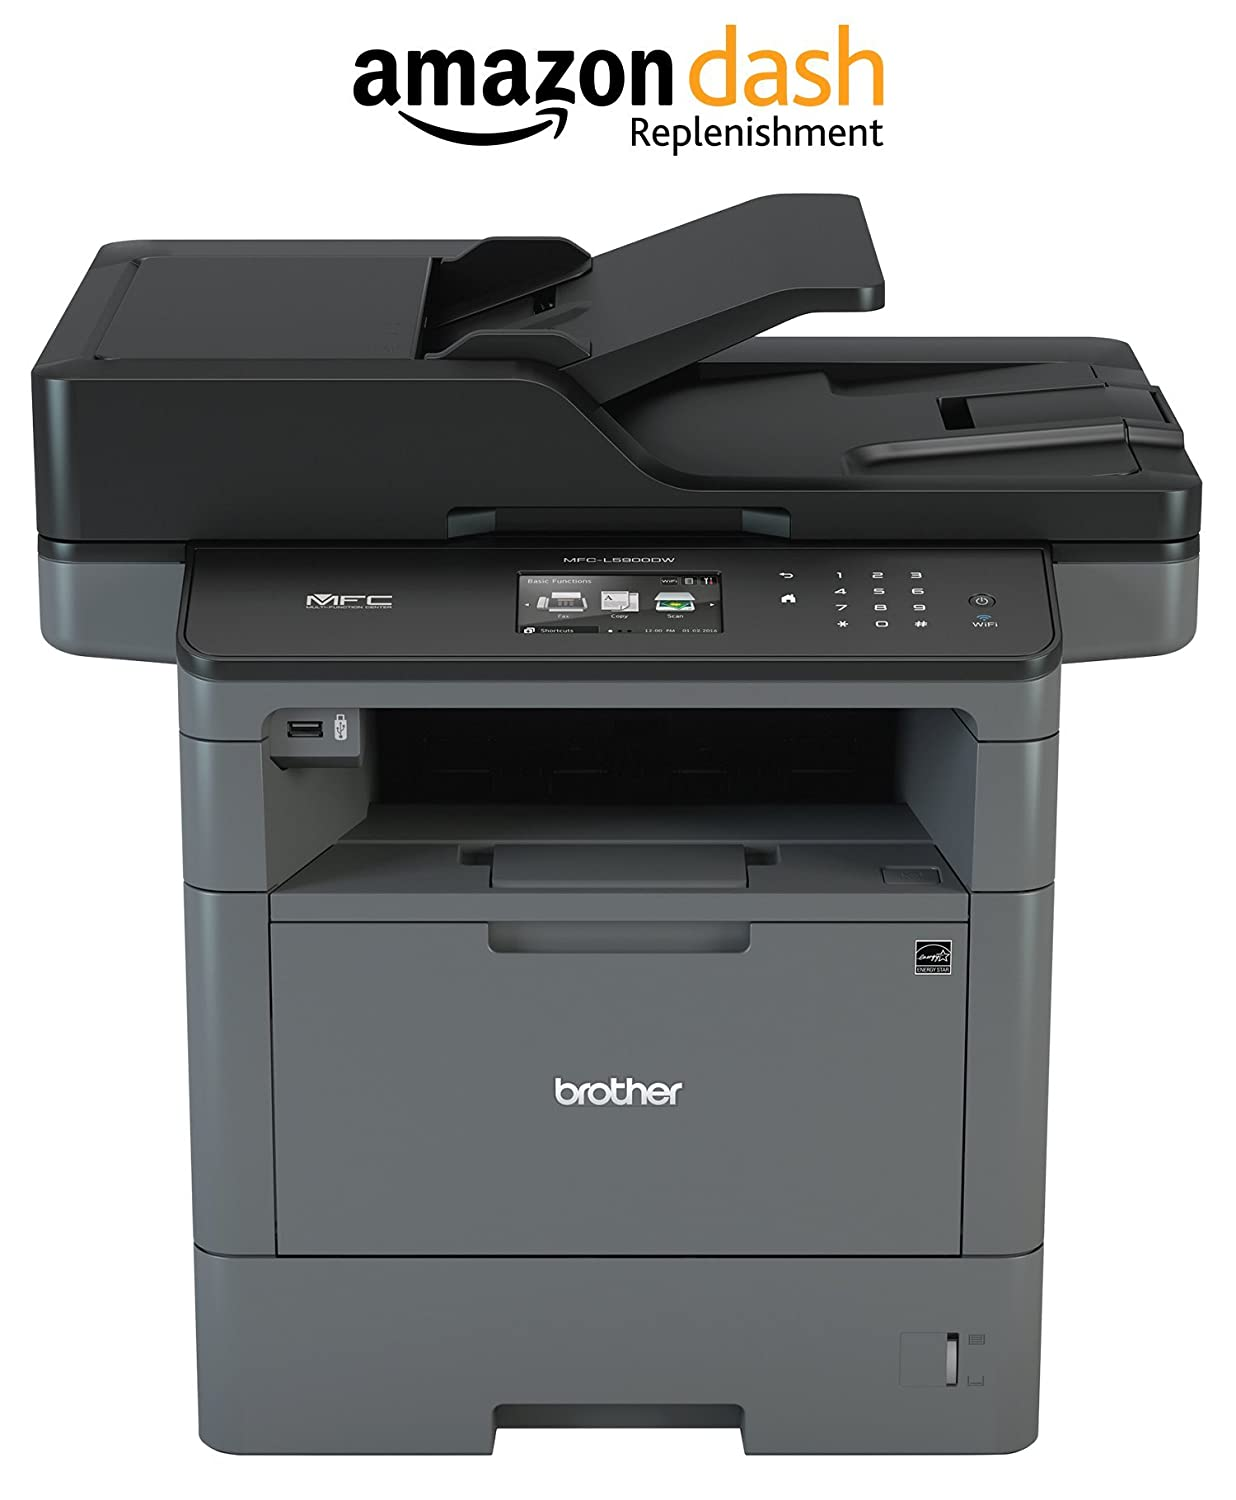 DRIVERS FOR BROTHER MULTIFUNCTION PRINTER